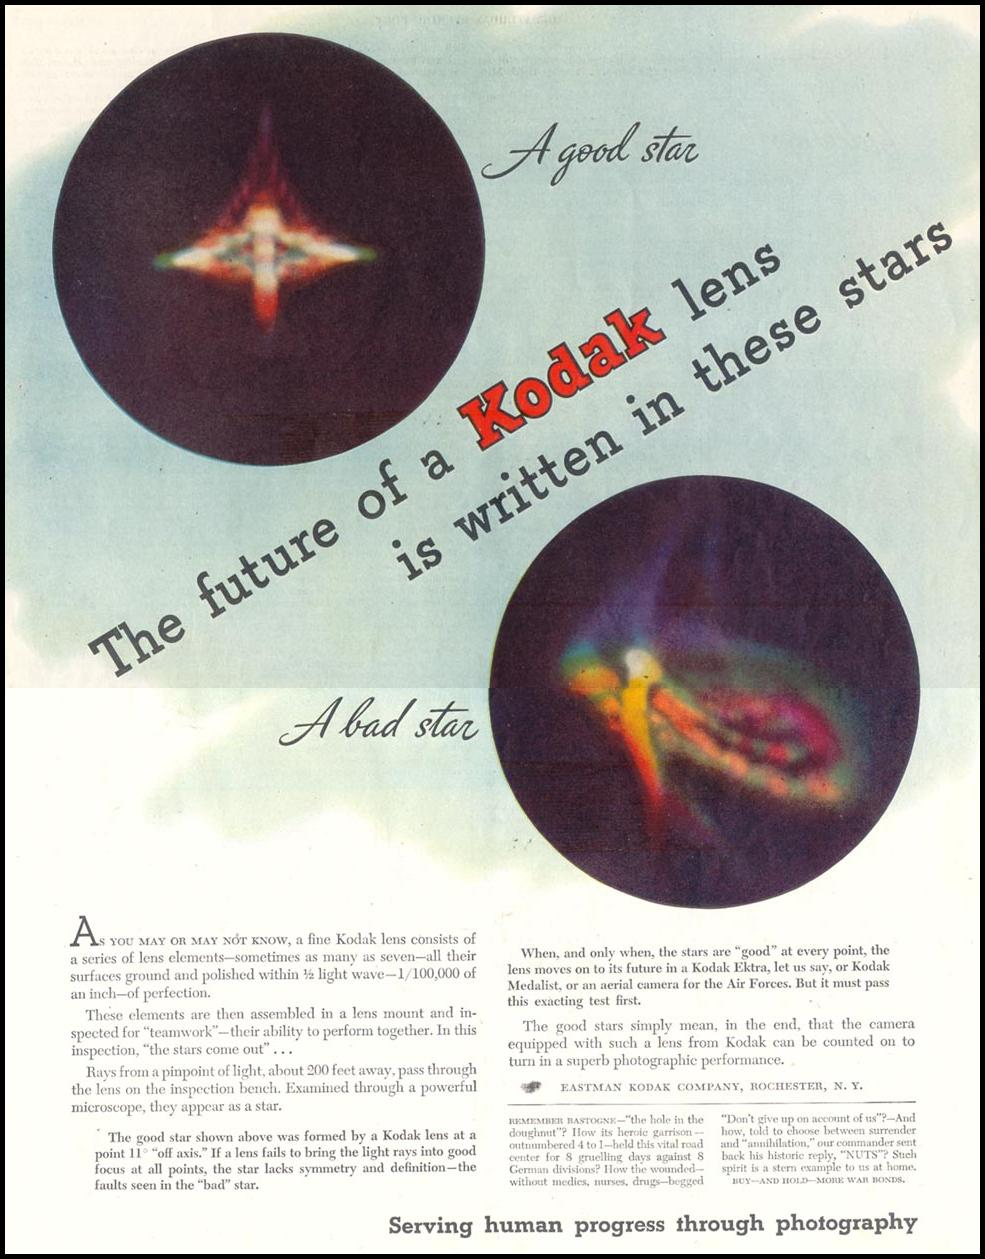 KODAK PHOTOGRAPHIC LENSES SATURDAY EVENING POST 05/19/1945 p. 47